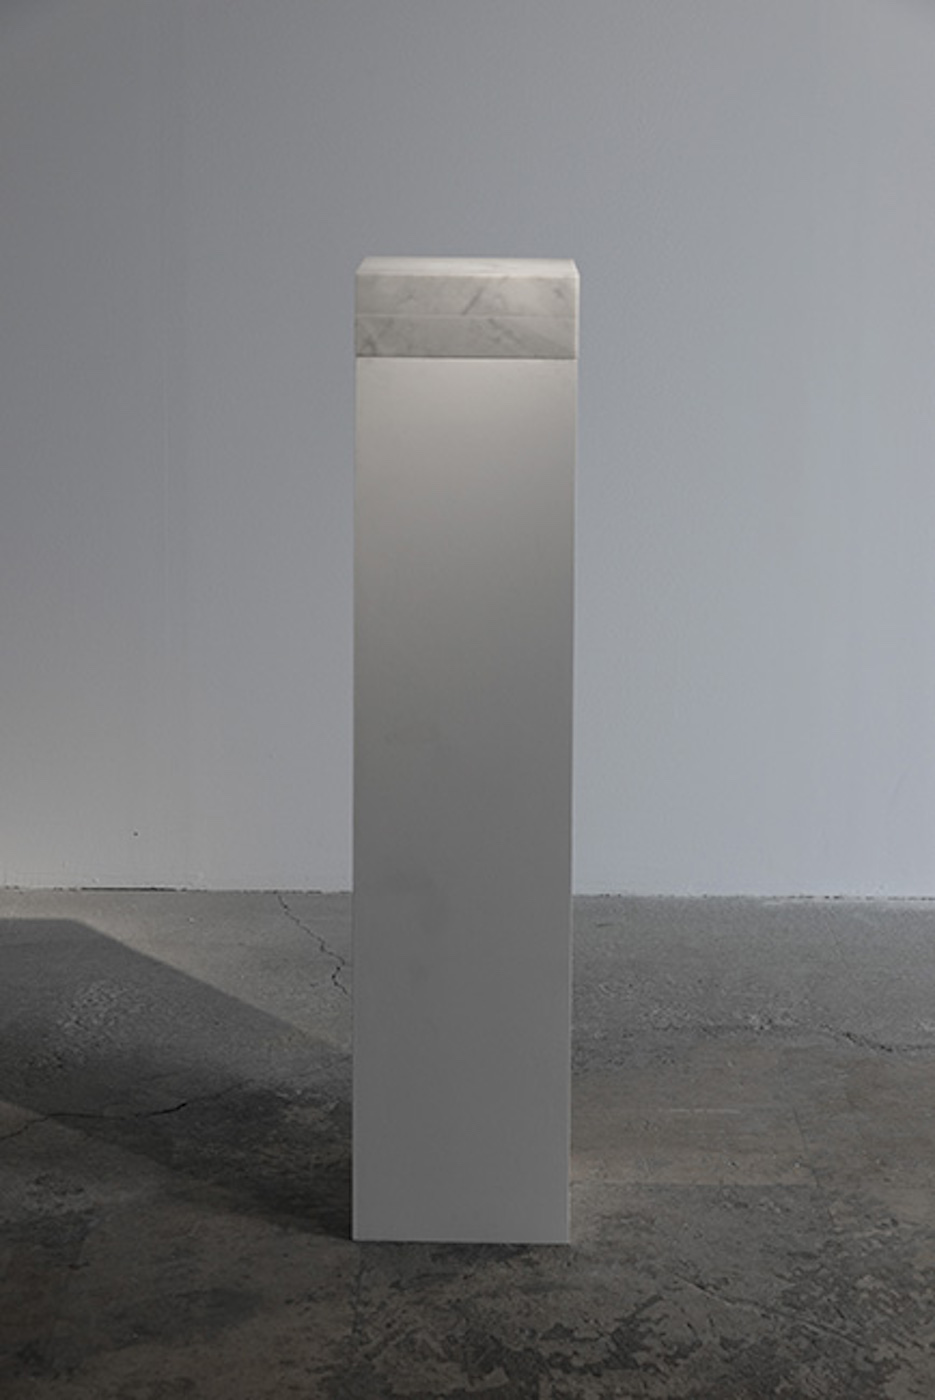 Night Enclosed in Marble 2012 – 2016 Carrara marble, 1cm3 of night of Kadisha valley Lebanon, hinges 23 x 23 x 9 cm   In 'Night Enclosed in Marble', the artist transported a Carrara marble box to a forest in Mount Lebanon on a dark night without moon (Dark Moon). He then opened the block for just a few seconds to capture, in the void sculpted inside of the box, 1cm3 of this specific night. The captured night will rest in the darkness of the crate for eternity. (The marble block opens like a book. In each of its massive interior part, 0.5 cm3 of void was carved, when closed it contains 1 cm3 of void at its center of gravity.)